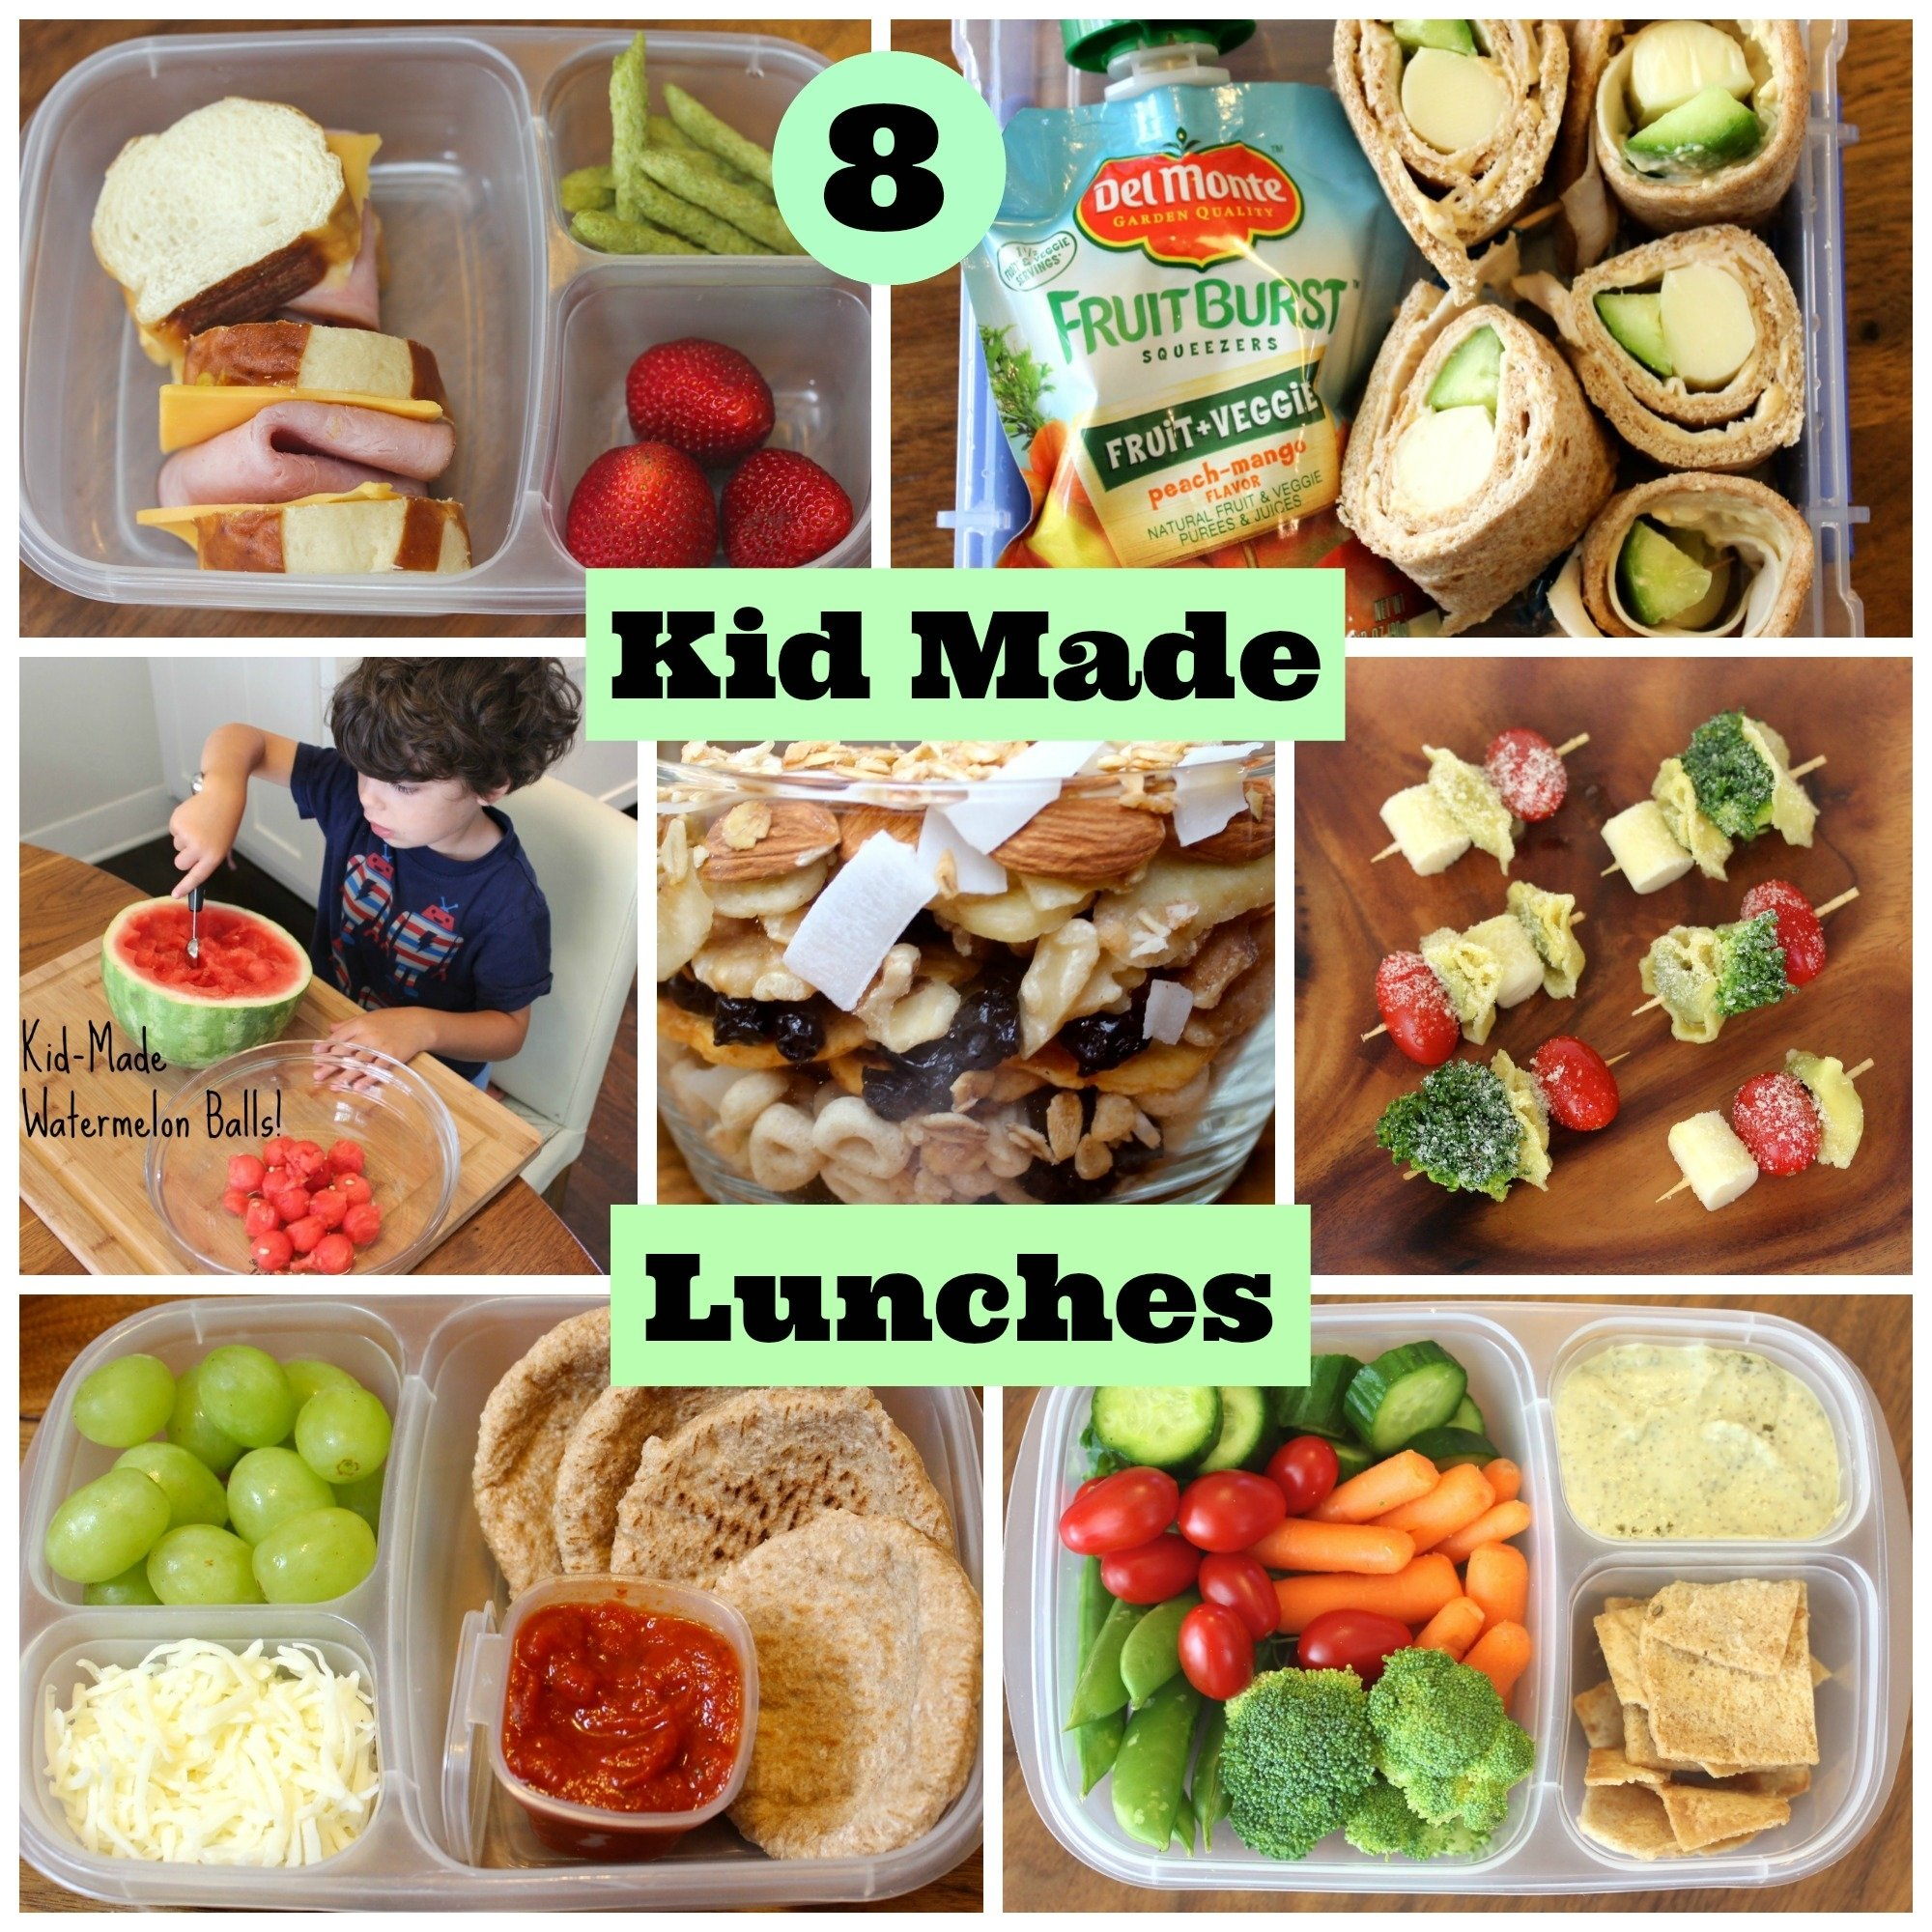 10 Amazing Good Lunch Ideas For Kids 4 healthy school lunches your kids can make themselves babble 9 2020